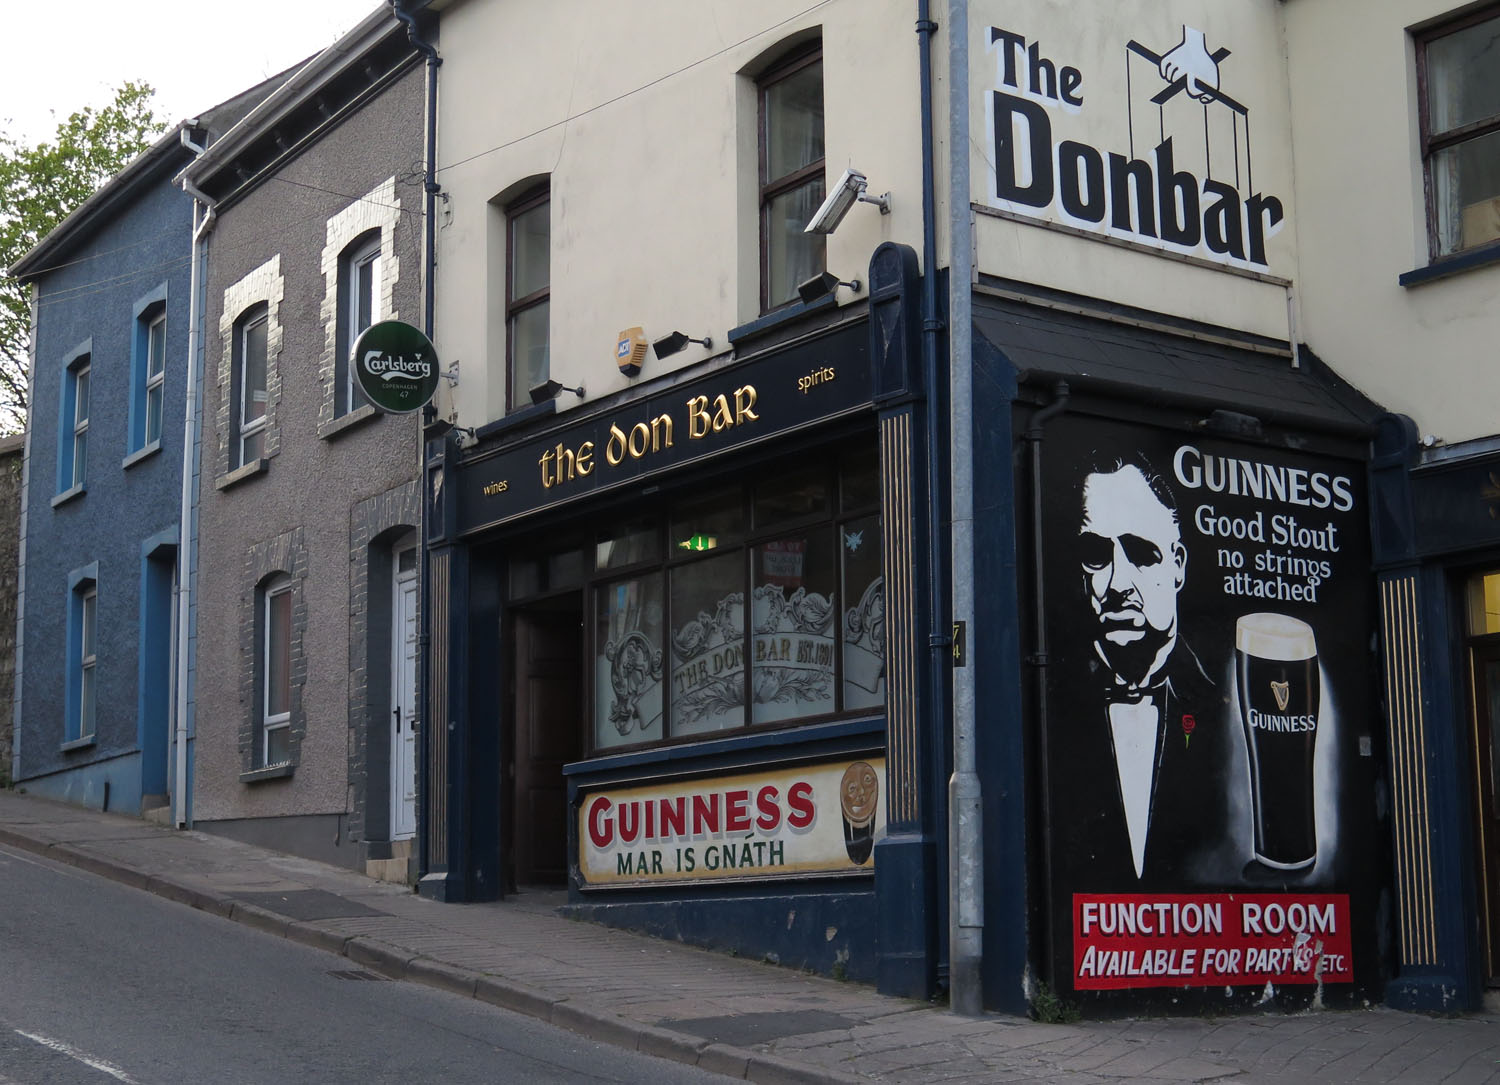 Northern-Ireland-Derry-Londonderry-Street-Scenes-The-Don-Bar